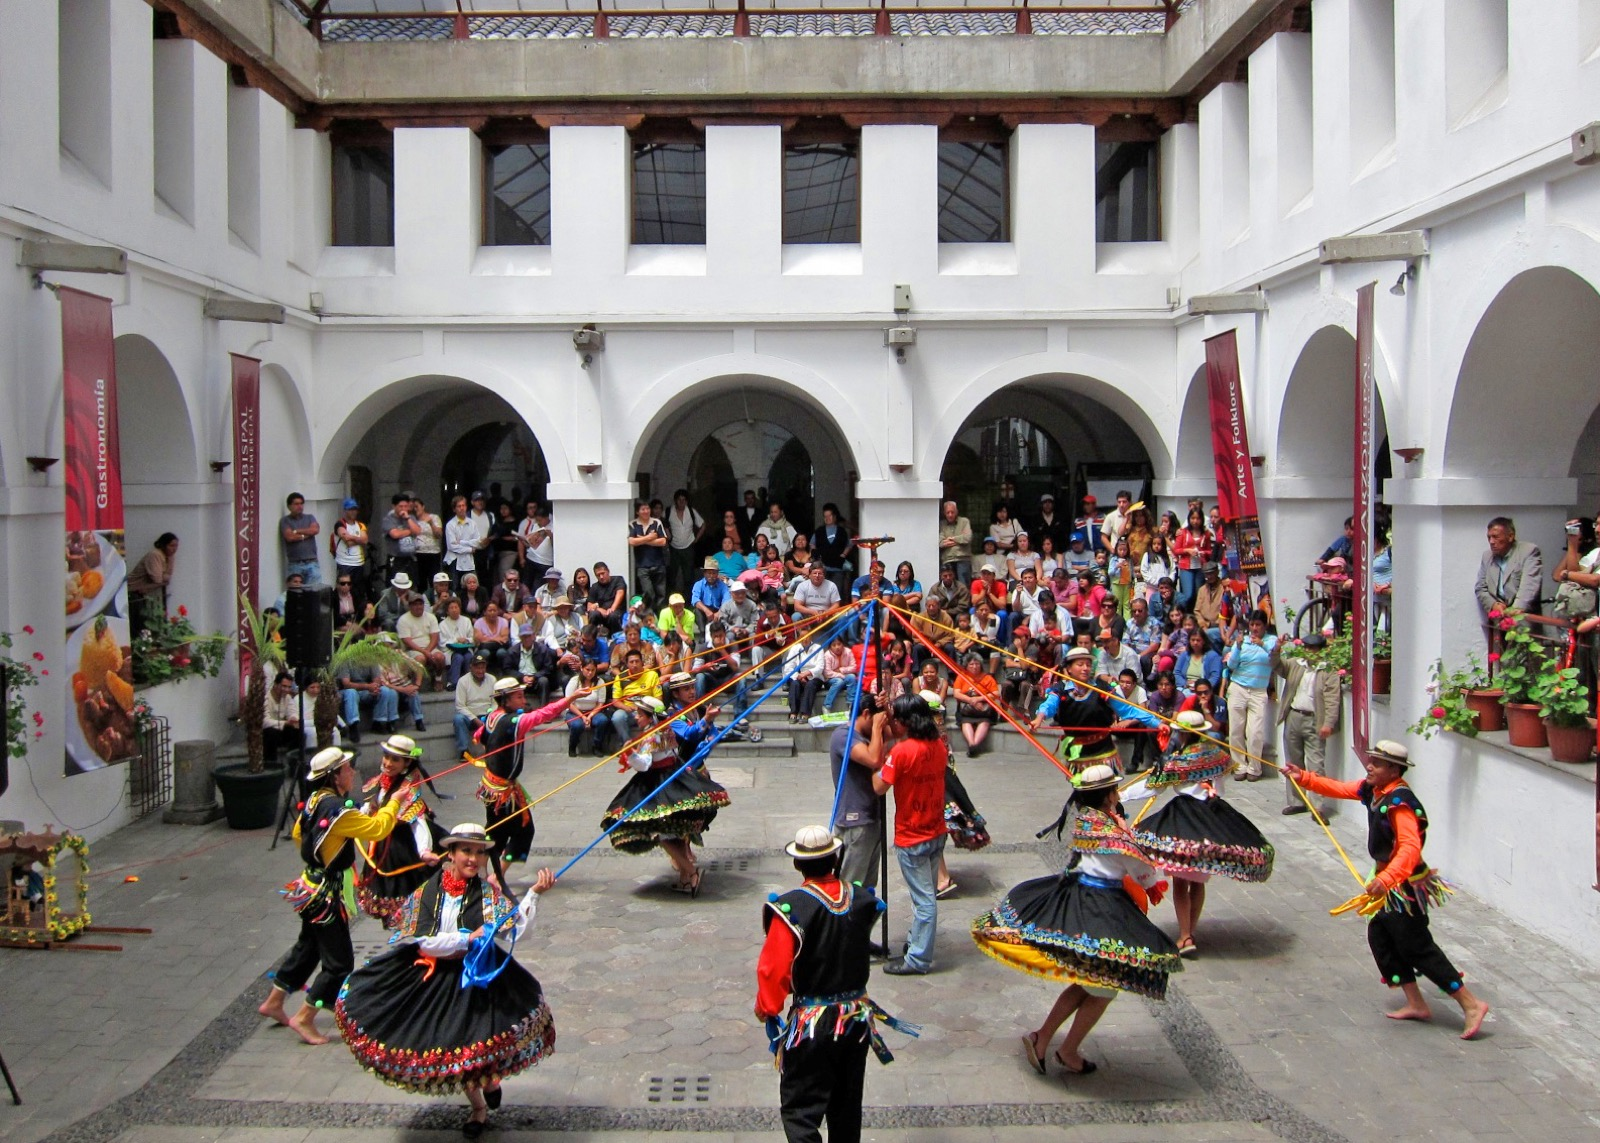 In a white-walled courtyard, visitors look on as Ecuadorian dancers in traditional outfits move around a pole, holding onto colorful ribbons.